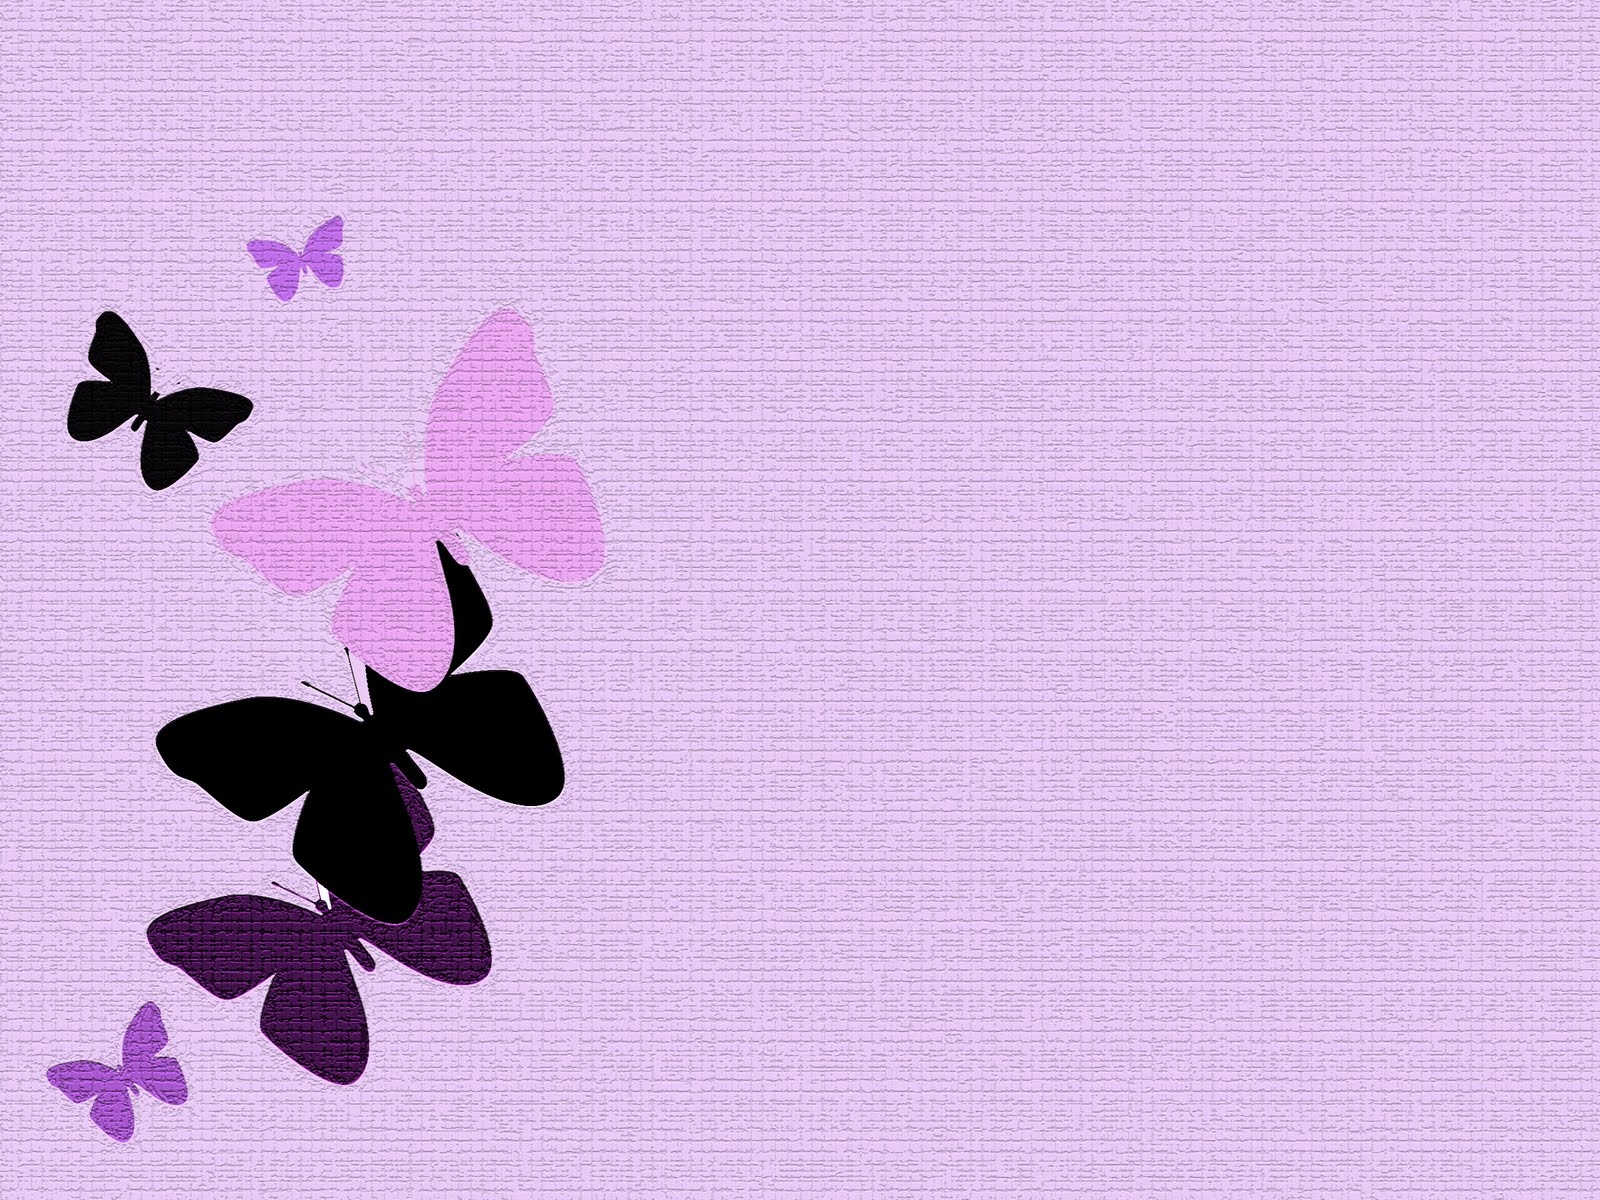 Butterfly Background Images Download Clip Art 1600x1200